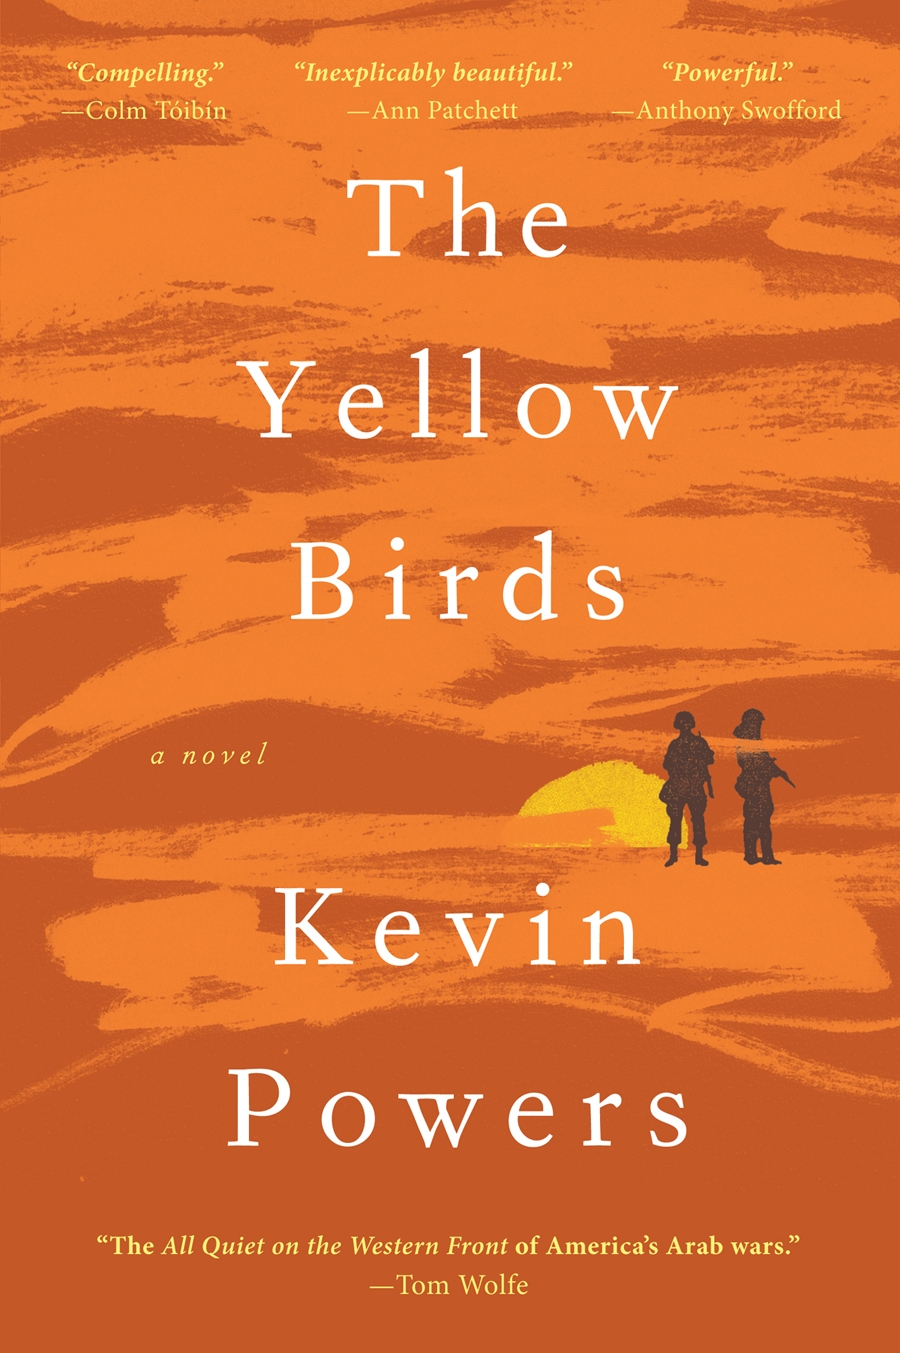 The Yellow Birds-Cover Book